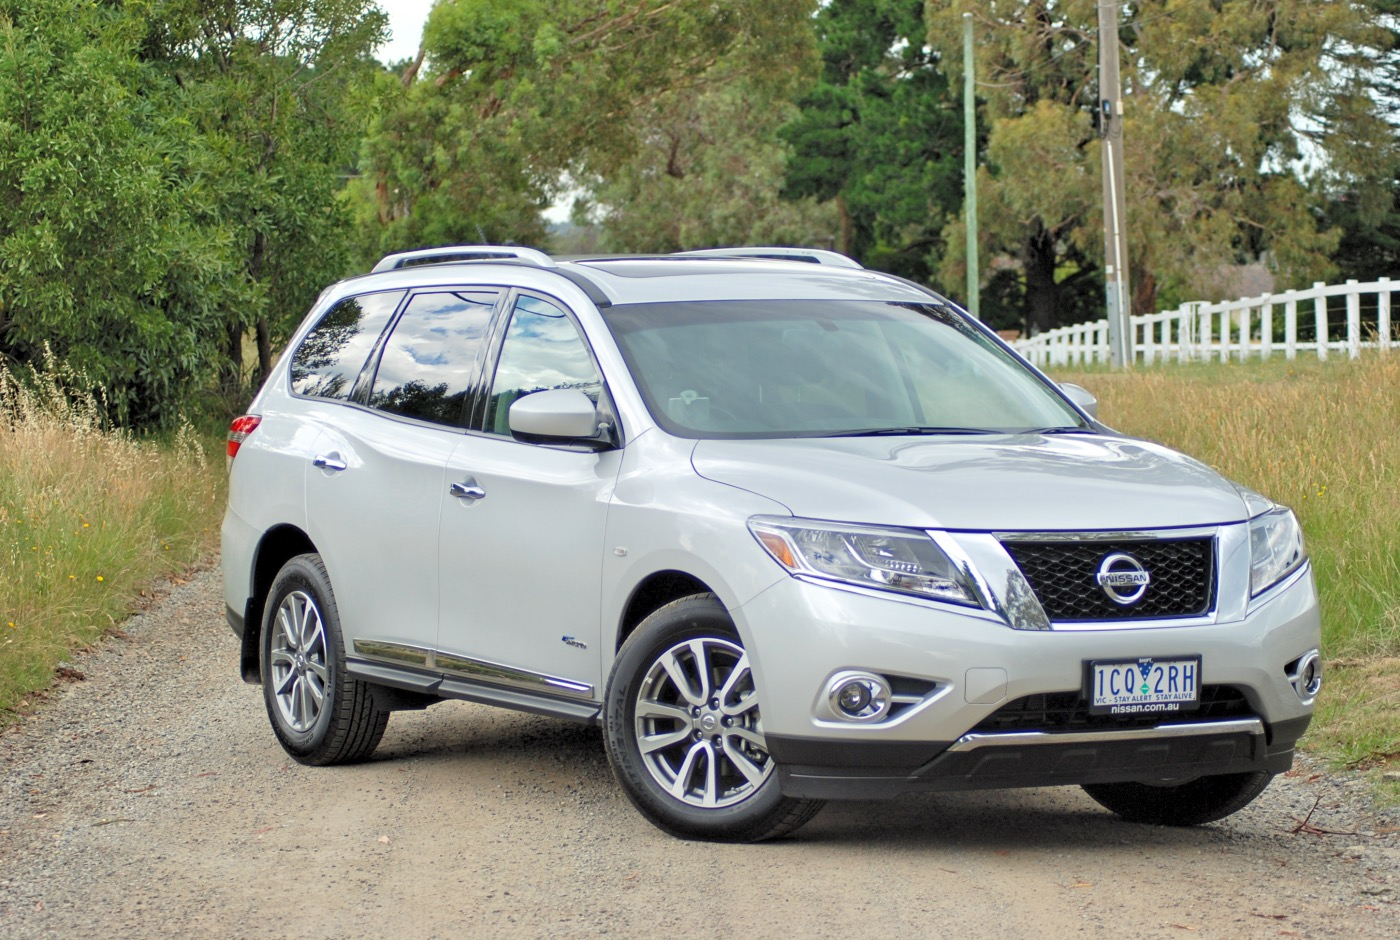 Review - 2015 Nissan Pathfinder Hybrid ST-L Review